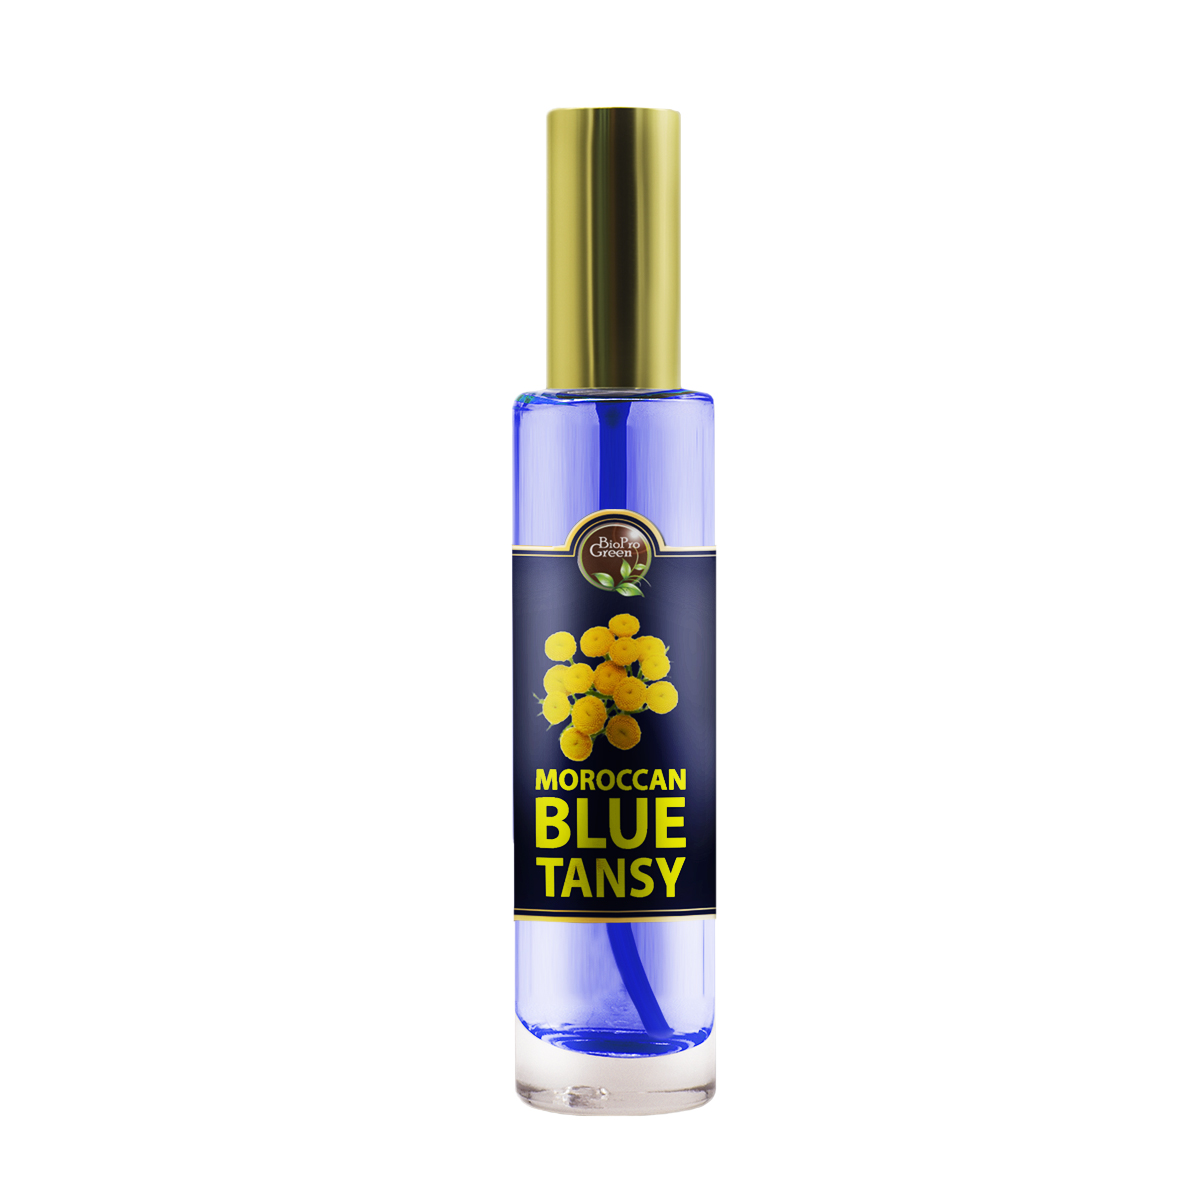 Moroccan Blue Tansy Essential Oil - Moroccan blue chamomile Essential Oil